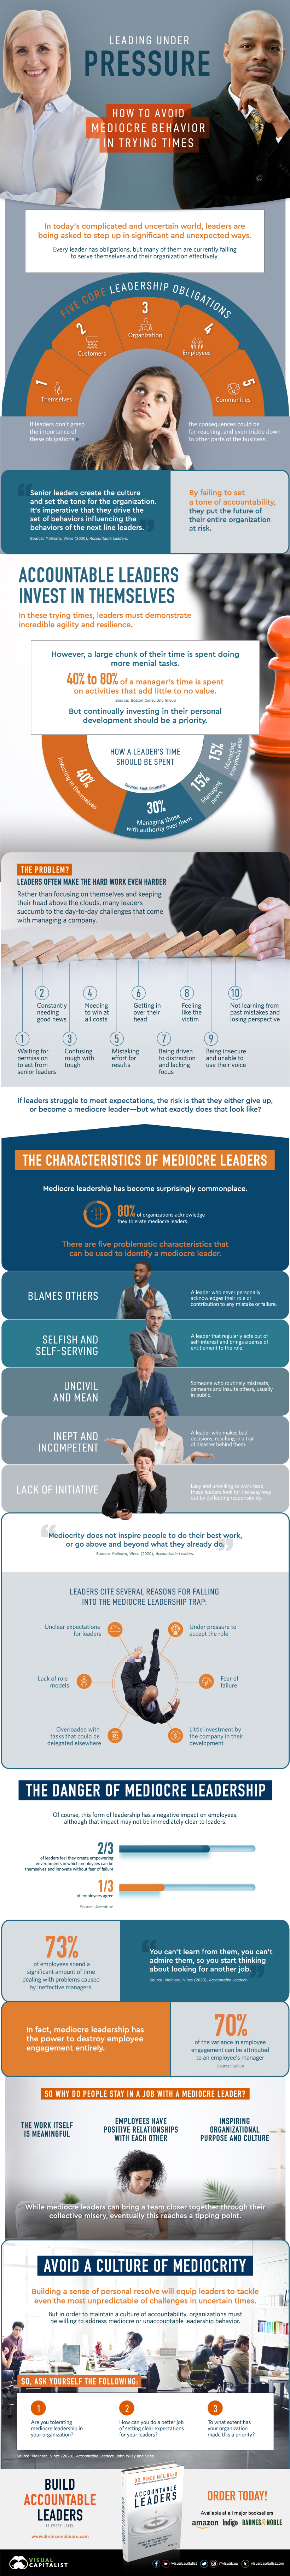 mediocre leadership graphic